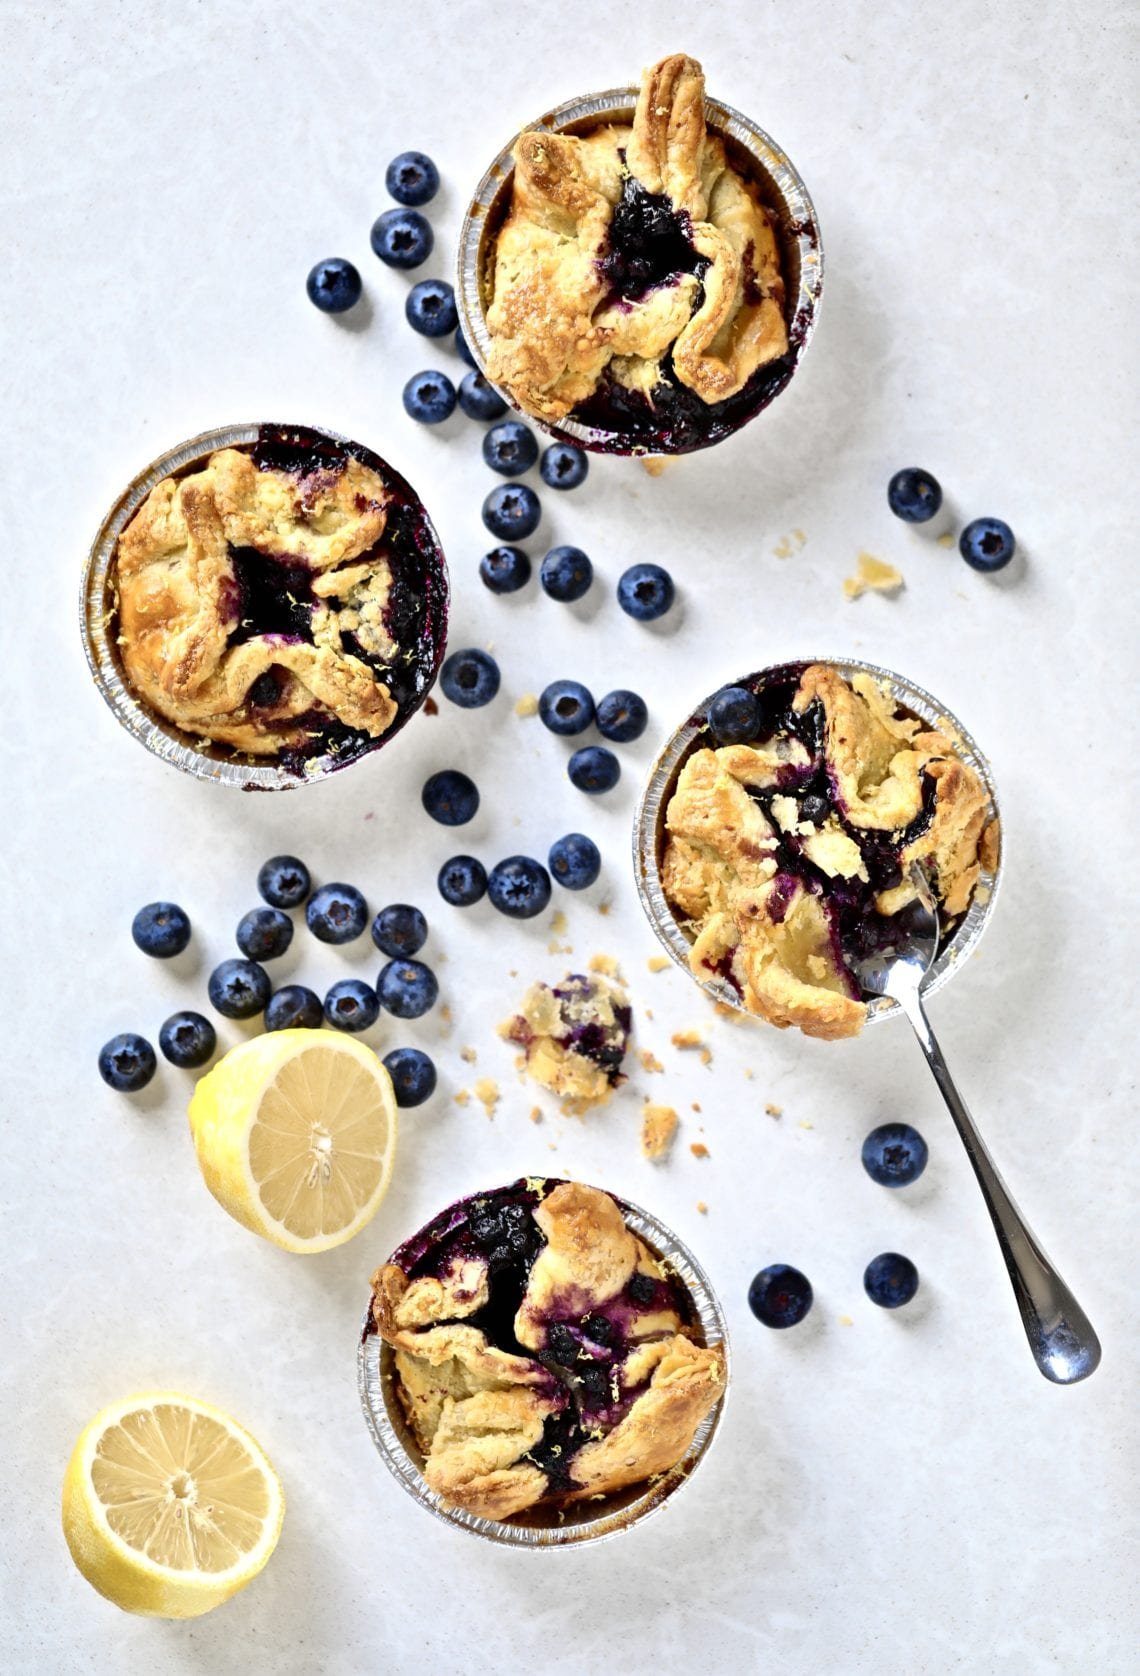 blueberry mini pies on a plate